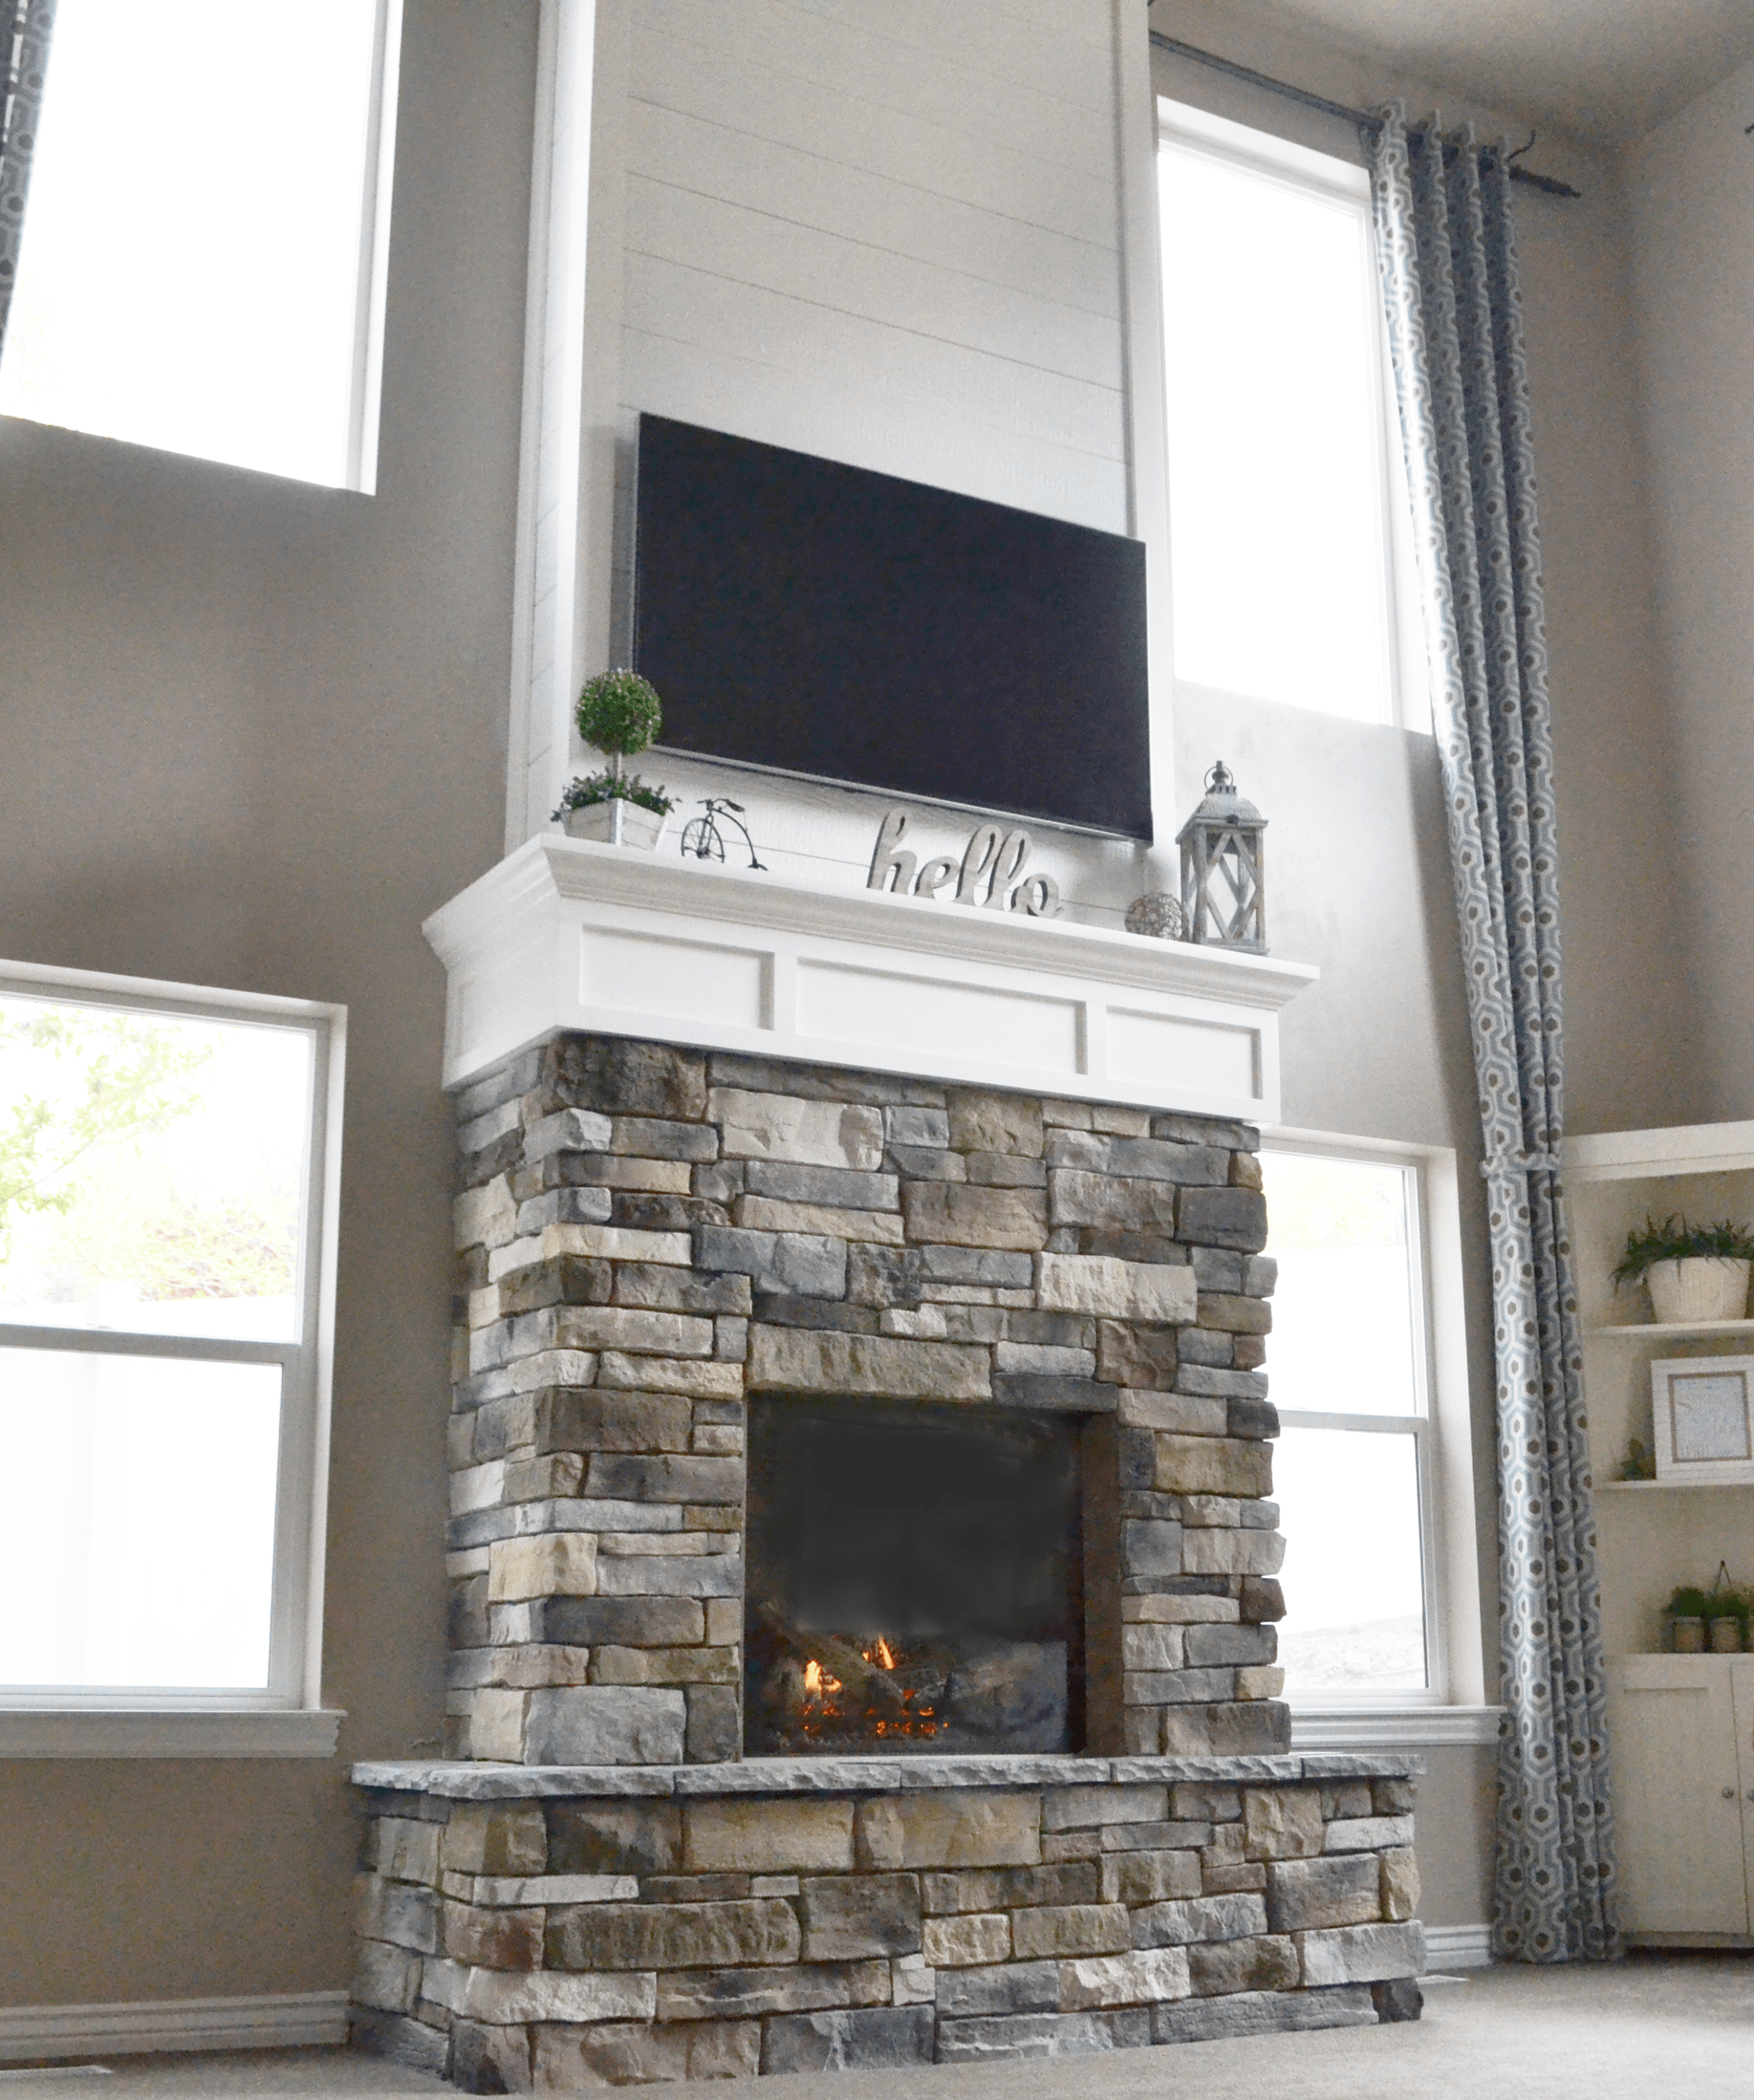 Homemade Fireplace Unique Diy Fireplace with Stone & Shiplap